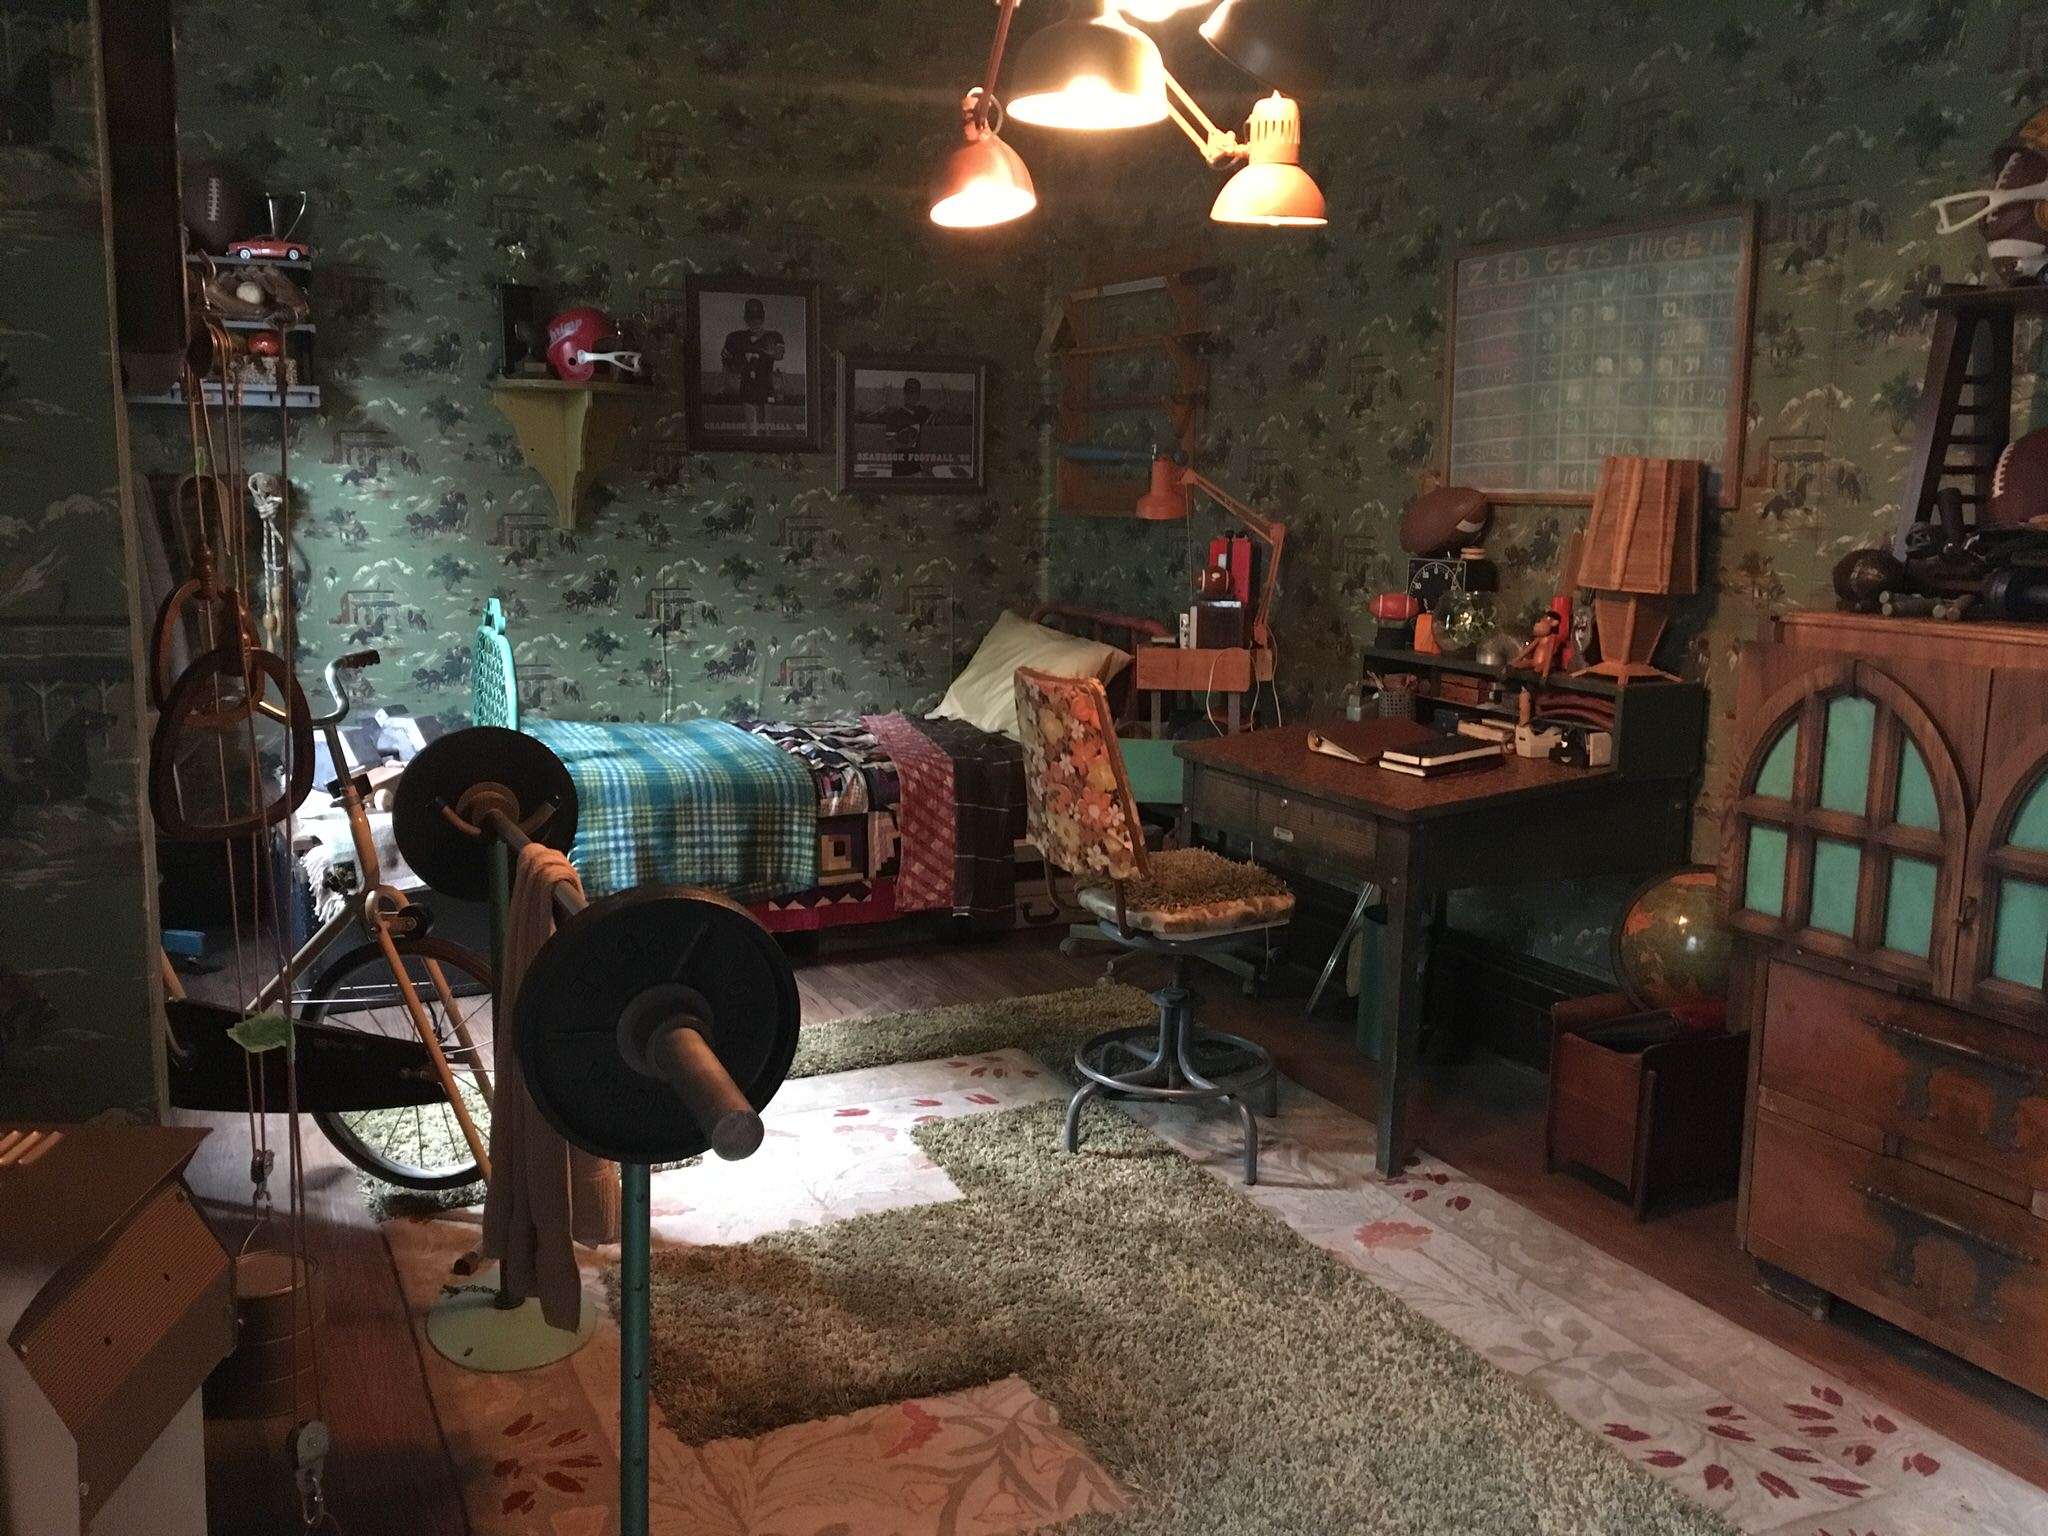 Zed's (Milo Manheim) room. Zed's dad Zevon (Tony Nappo) has done his best to make life as normal as possible for his kids in this human/zombie apartheid. Their home speaks to the thrift and genius of their kind.